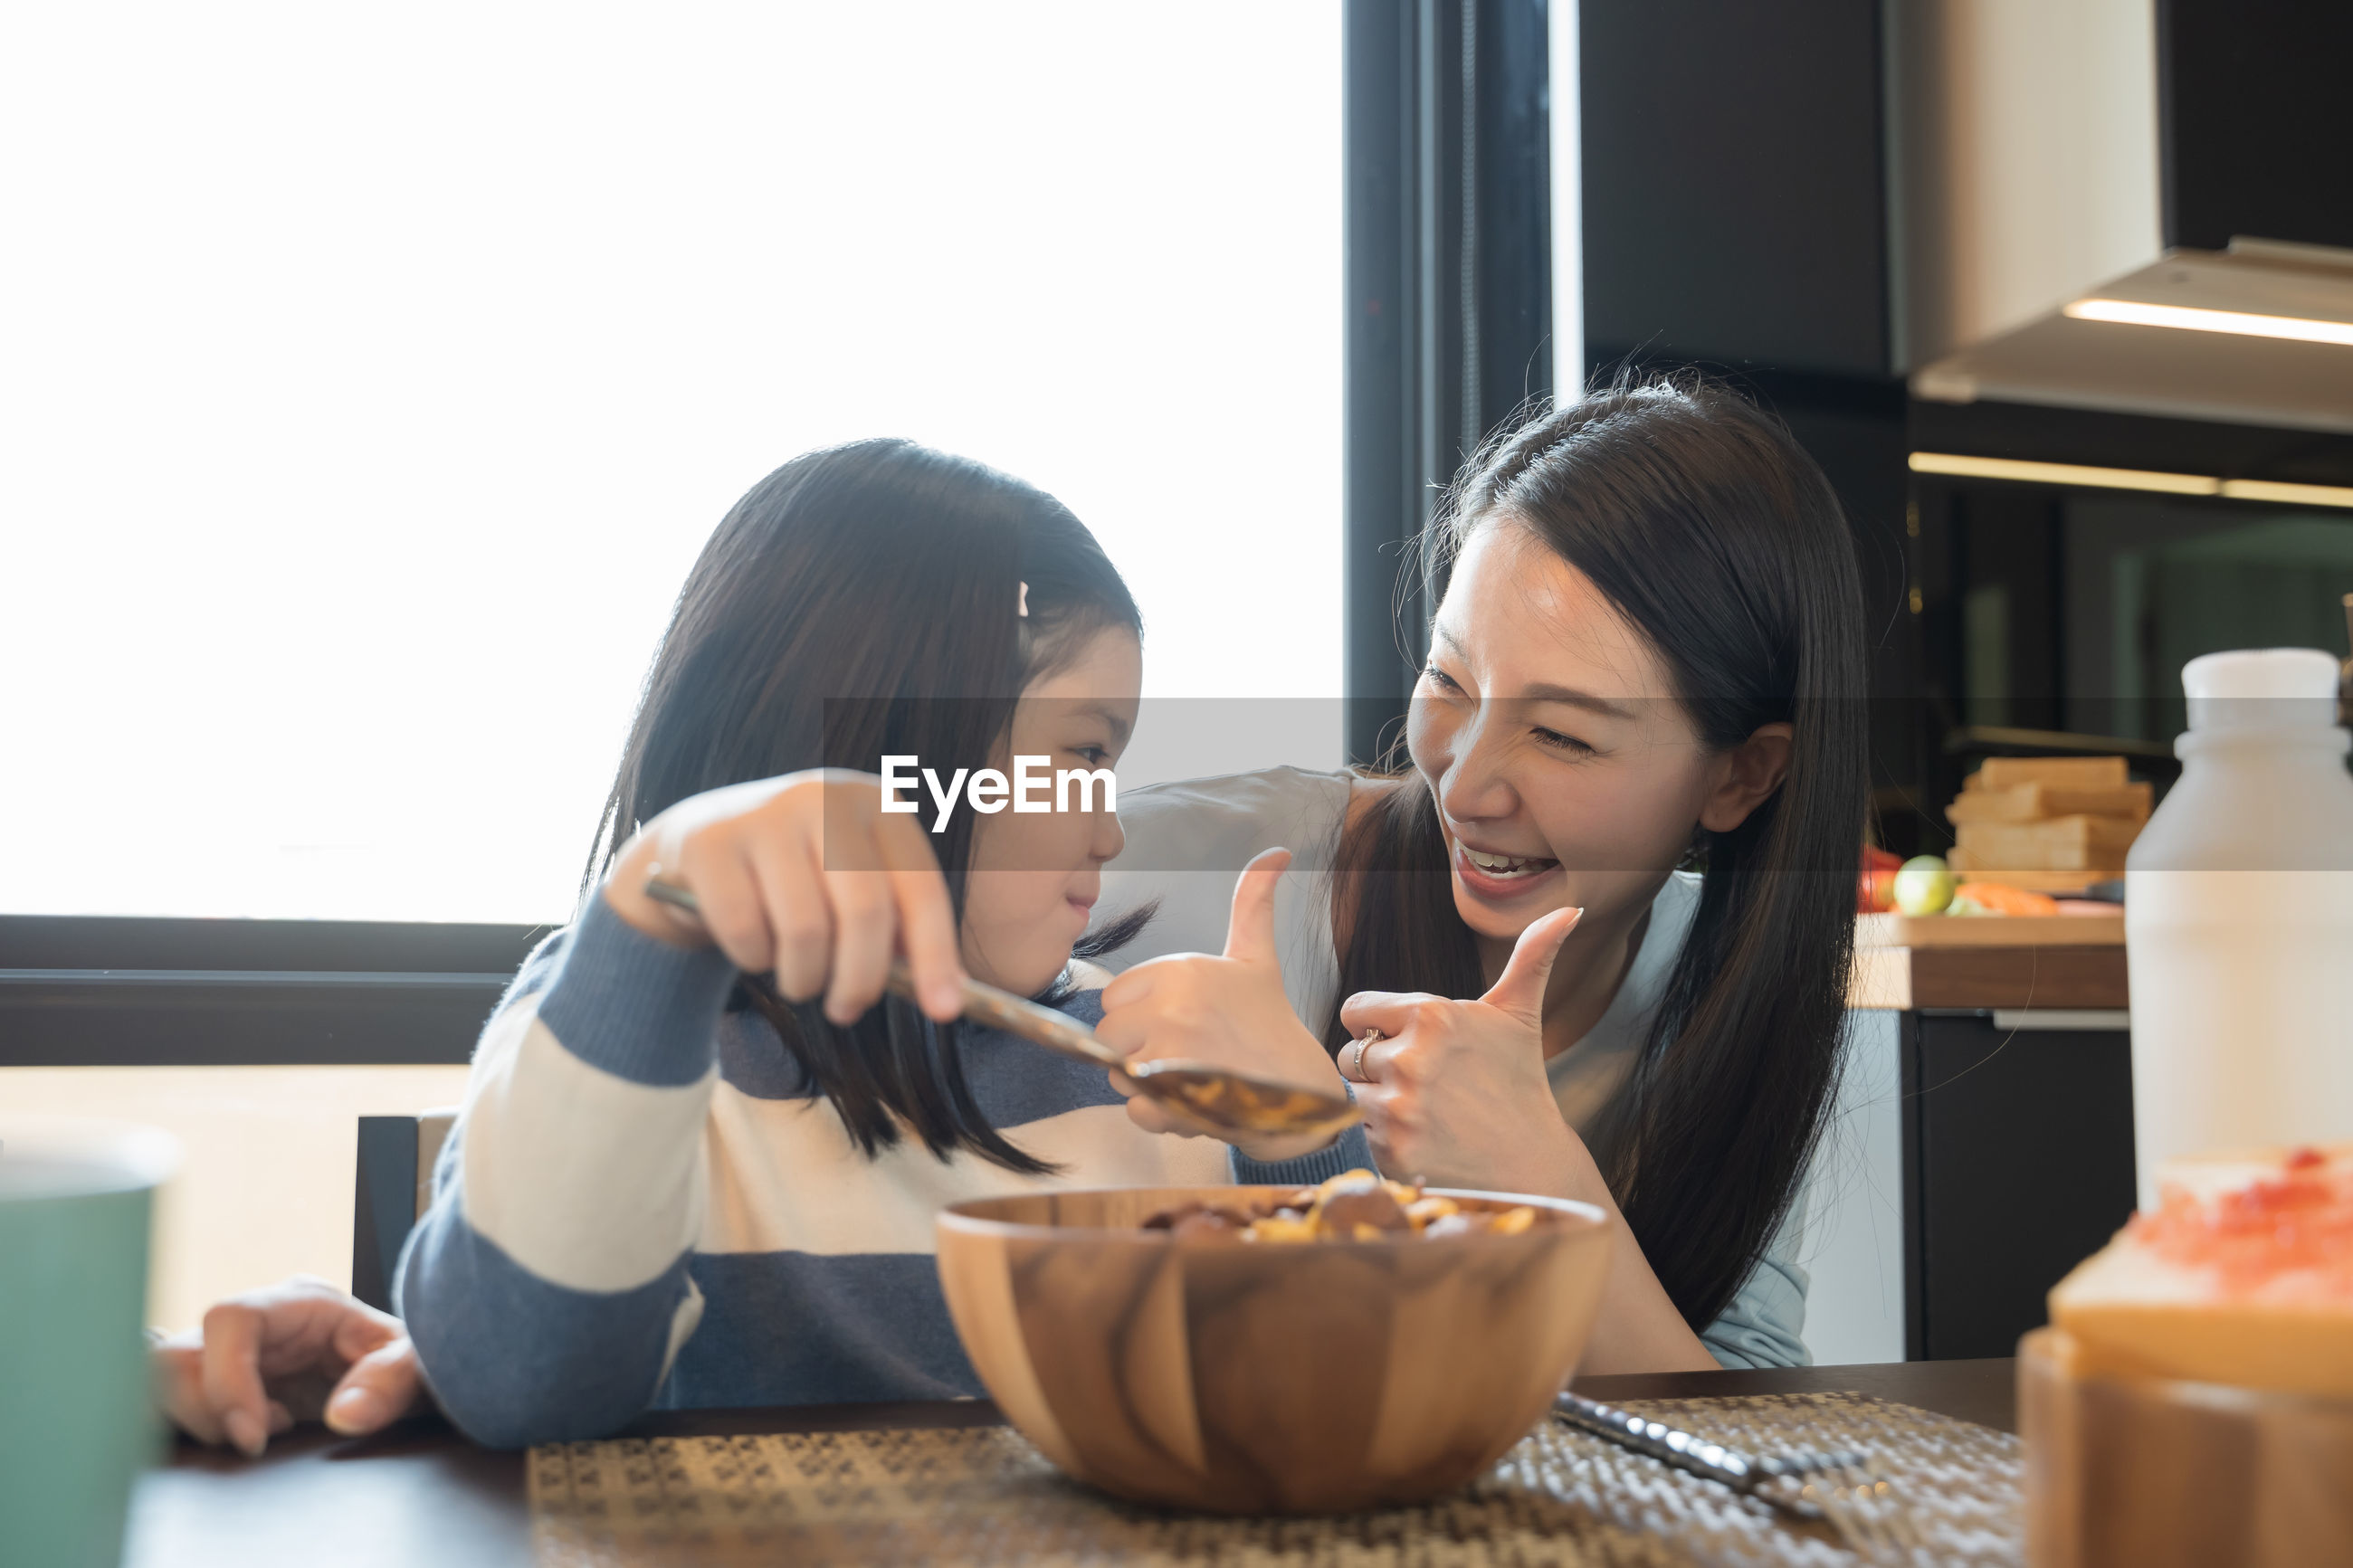 Girl and woman gesturing with breakfast on table